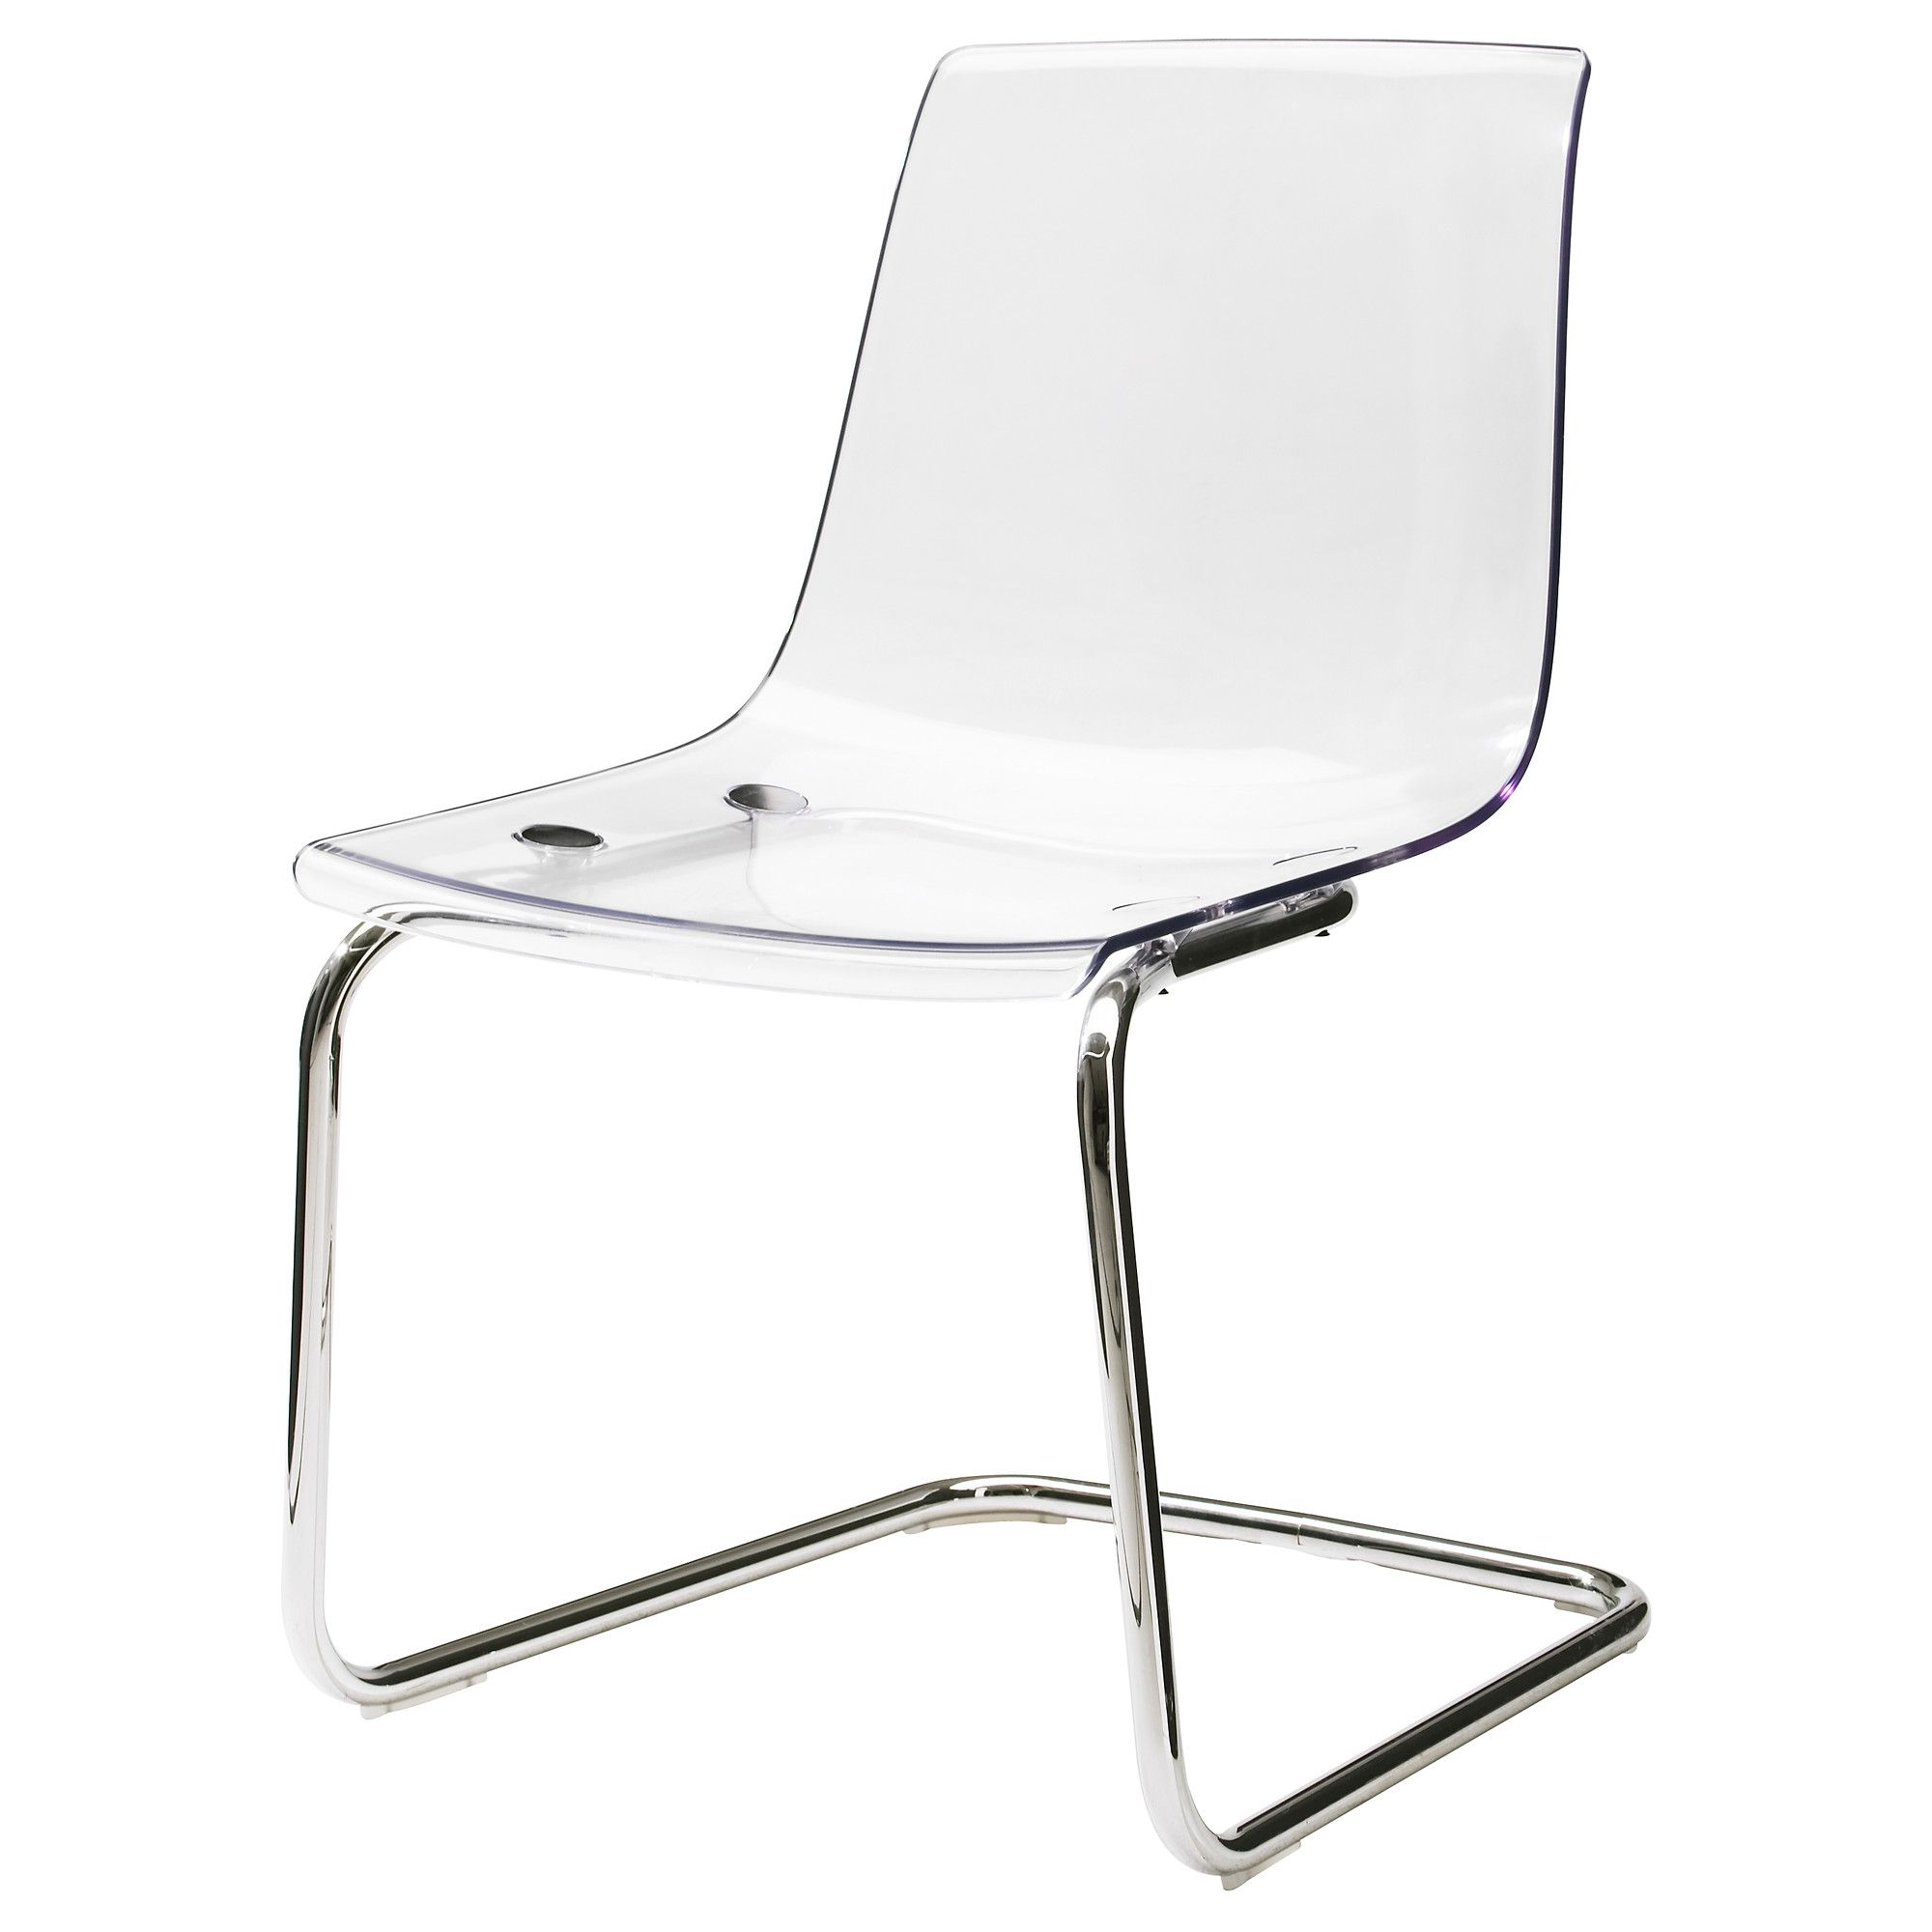 Acrylic clear chairs - Vilmar Chair Orange Chrome Plated